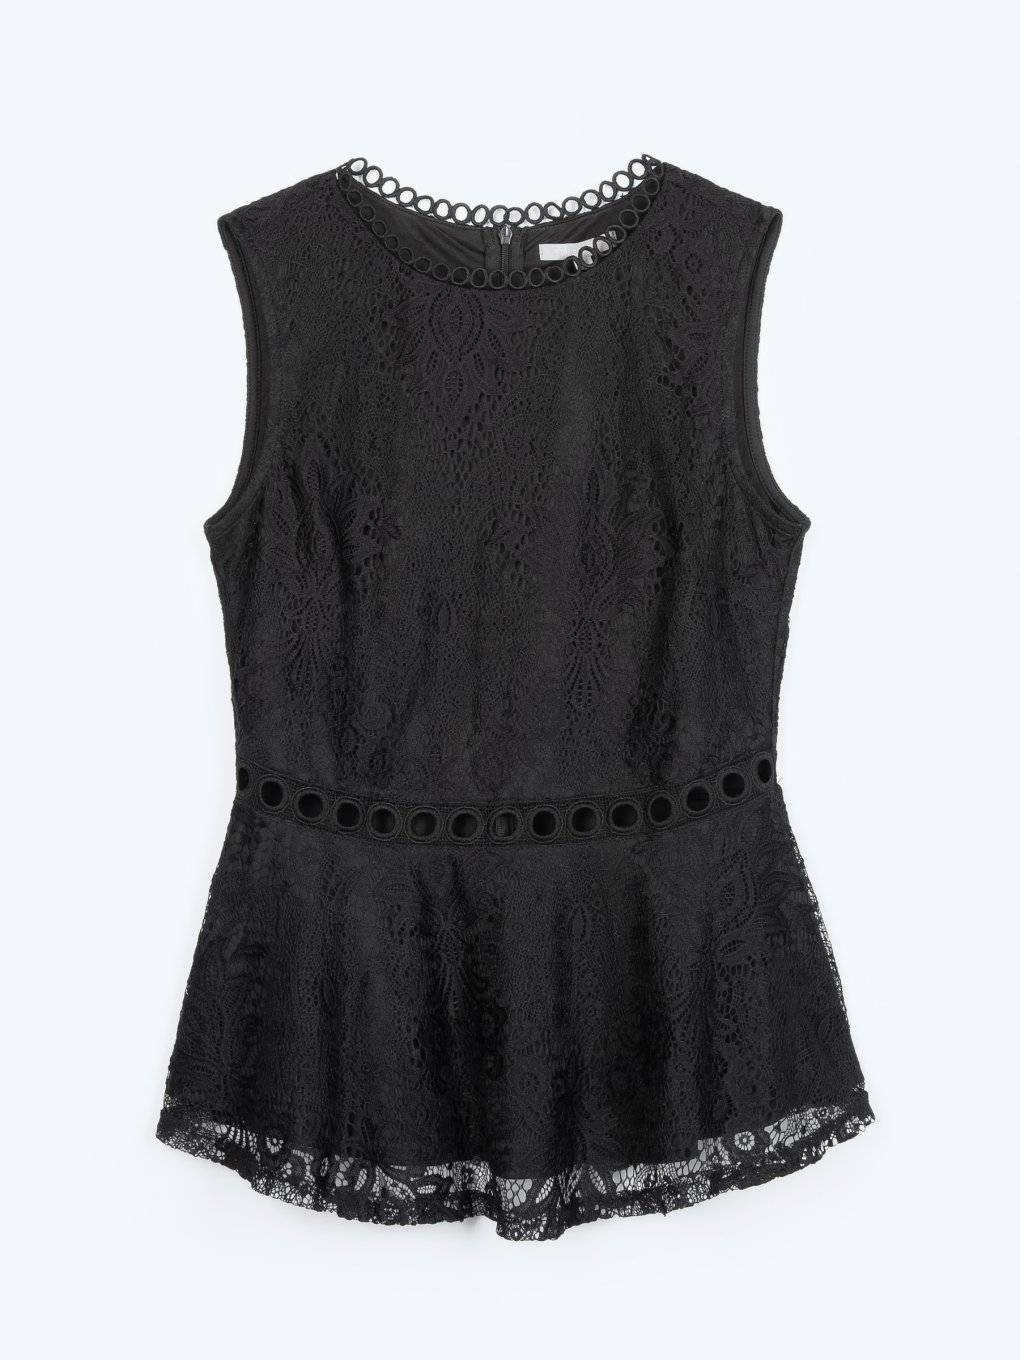 Lace peplum sleeveless top